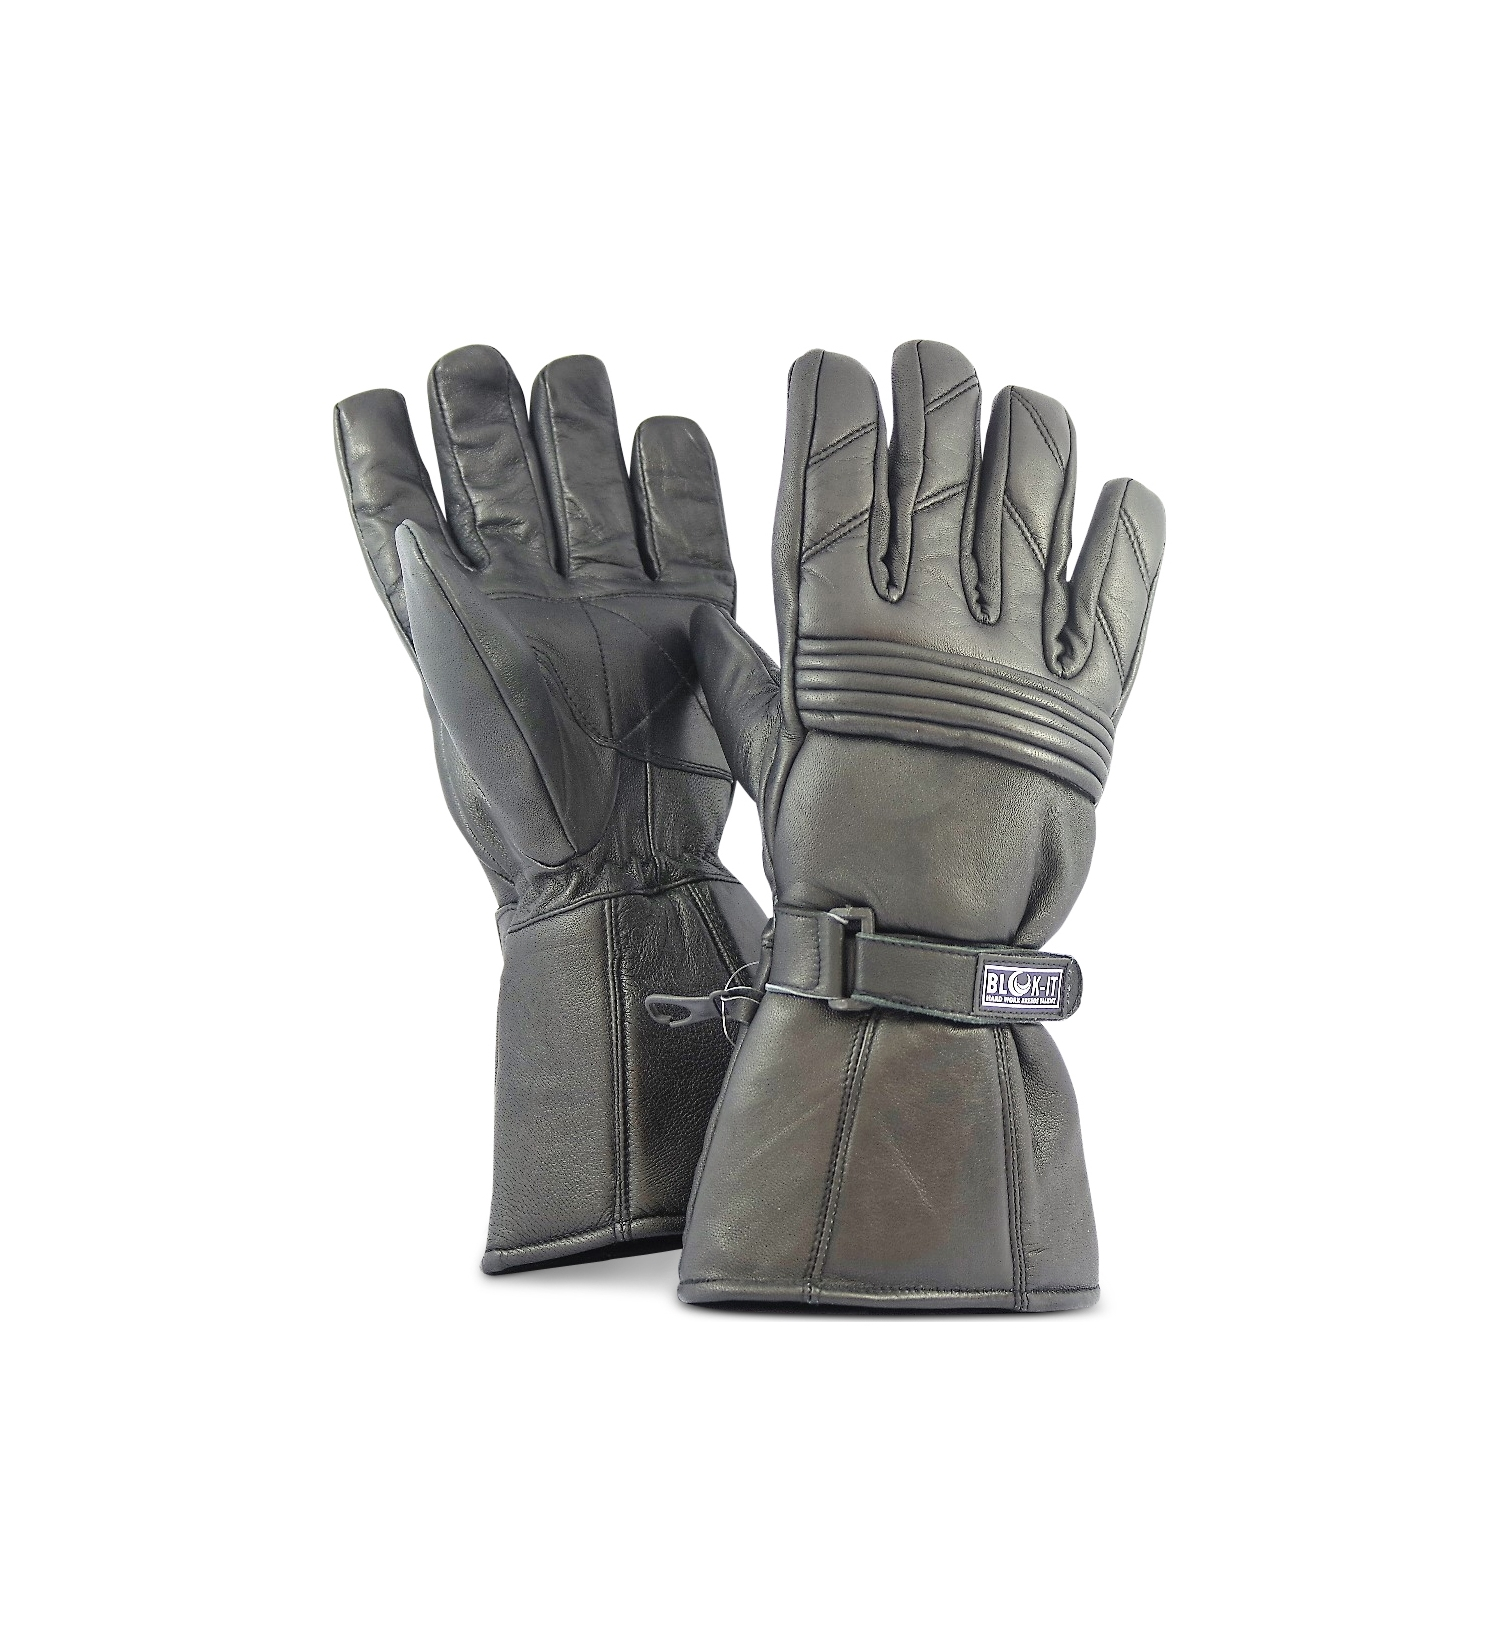 Jrc motorcycle gloves -  Full Leather Motorcycle Gloves By Blok It Gloves Are Waterproof